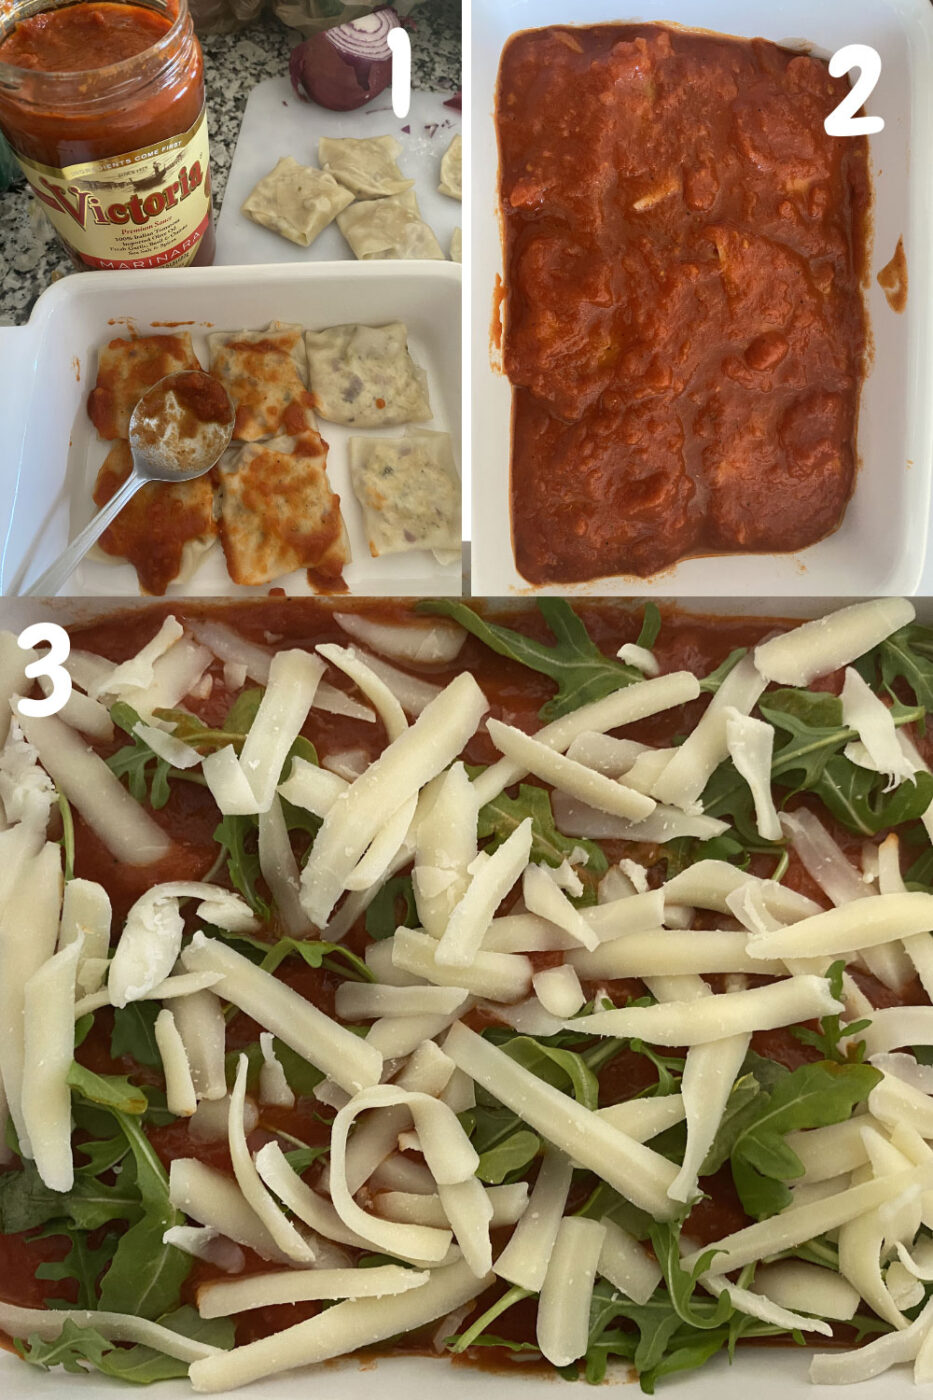 Collage of 3 images that show the 3 steps to make the final process of baking the ravioli. Start with a layer of ravioli, top with sauces, then another layer of ravioli, sauce, cheese and arugula